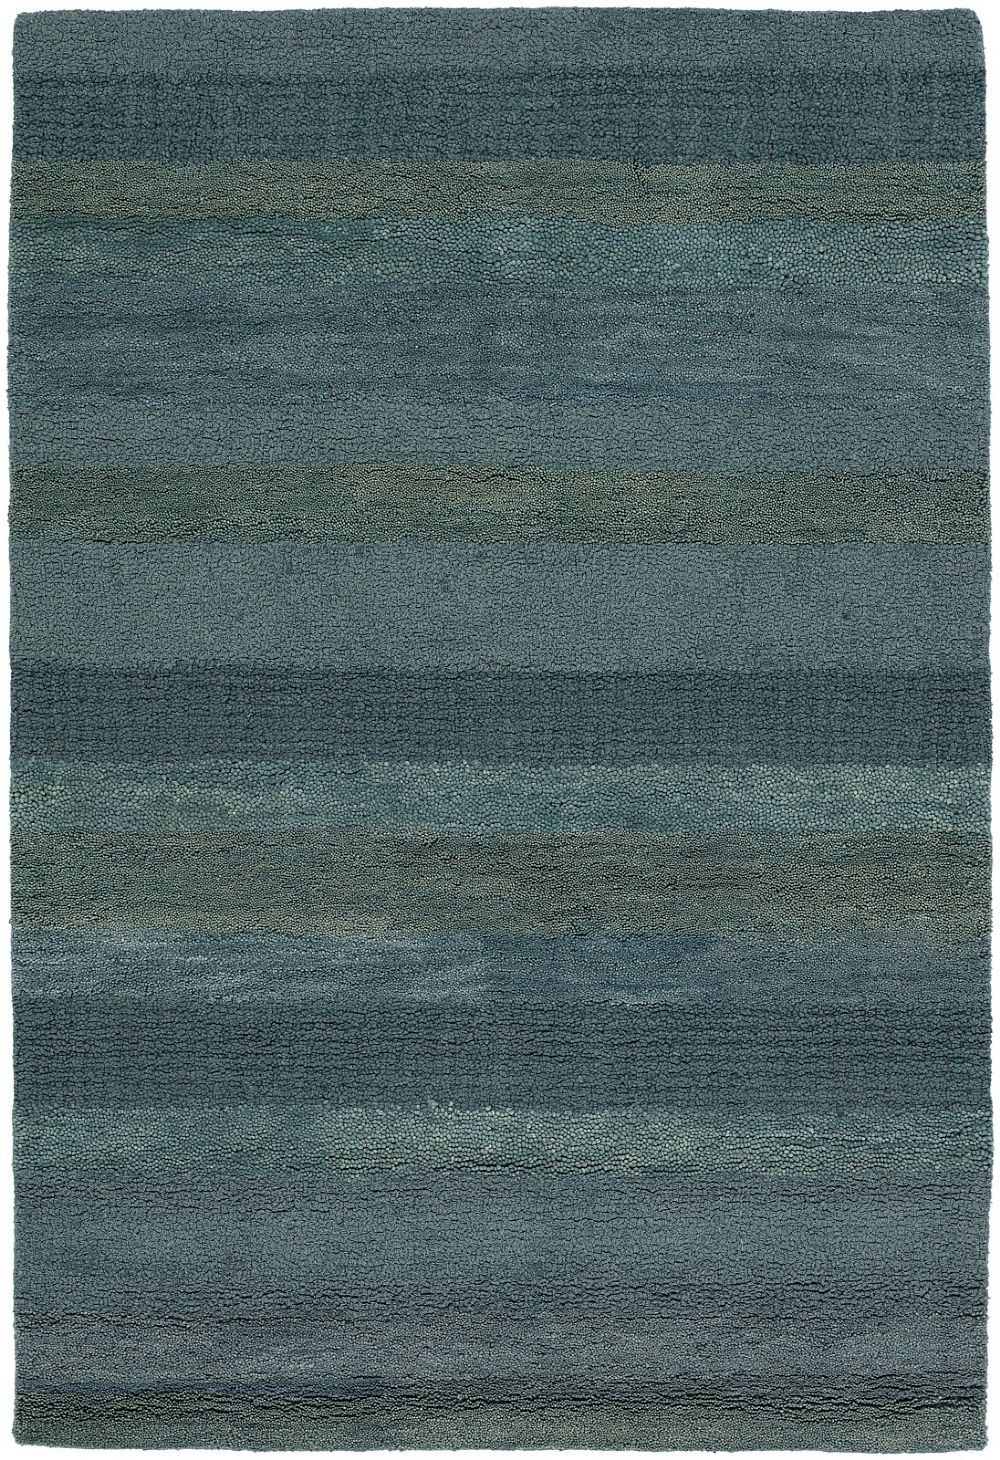 chandra dejon contemporary area rug collection